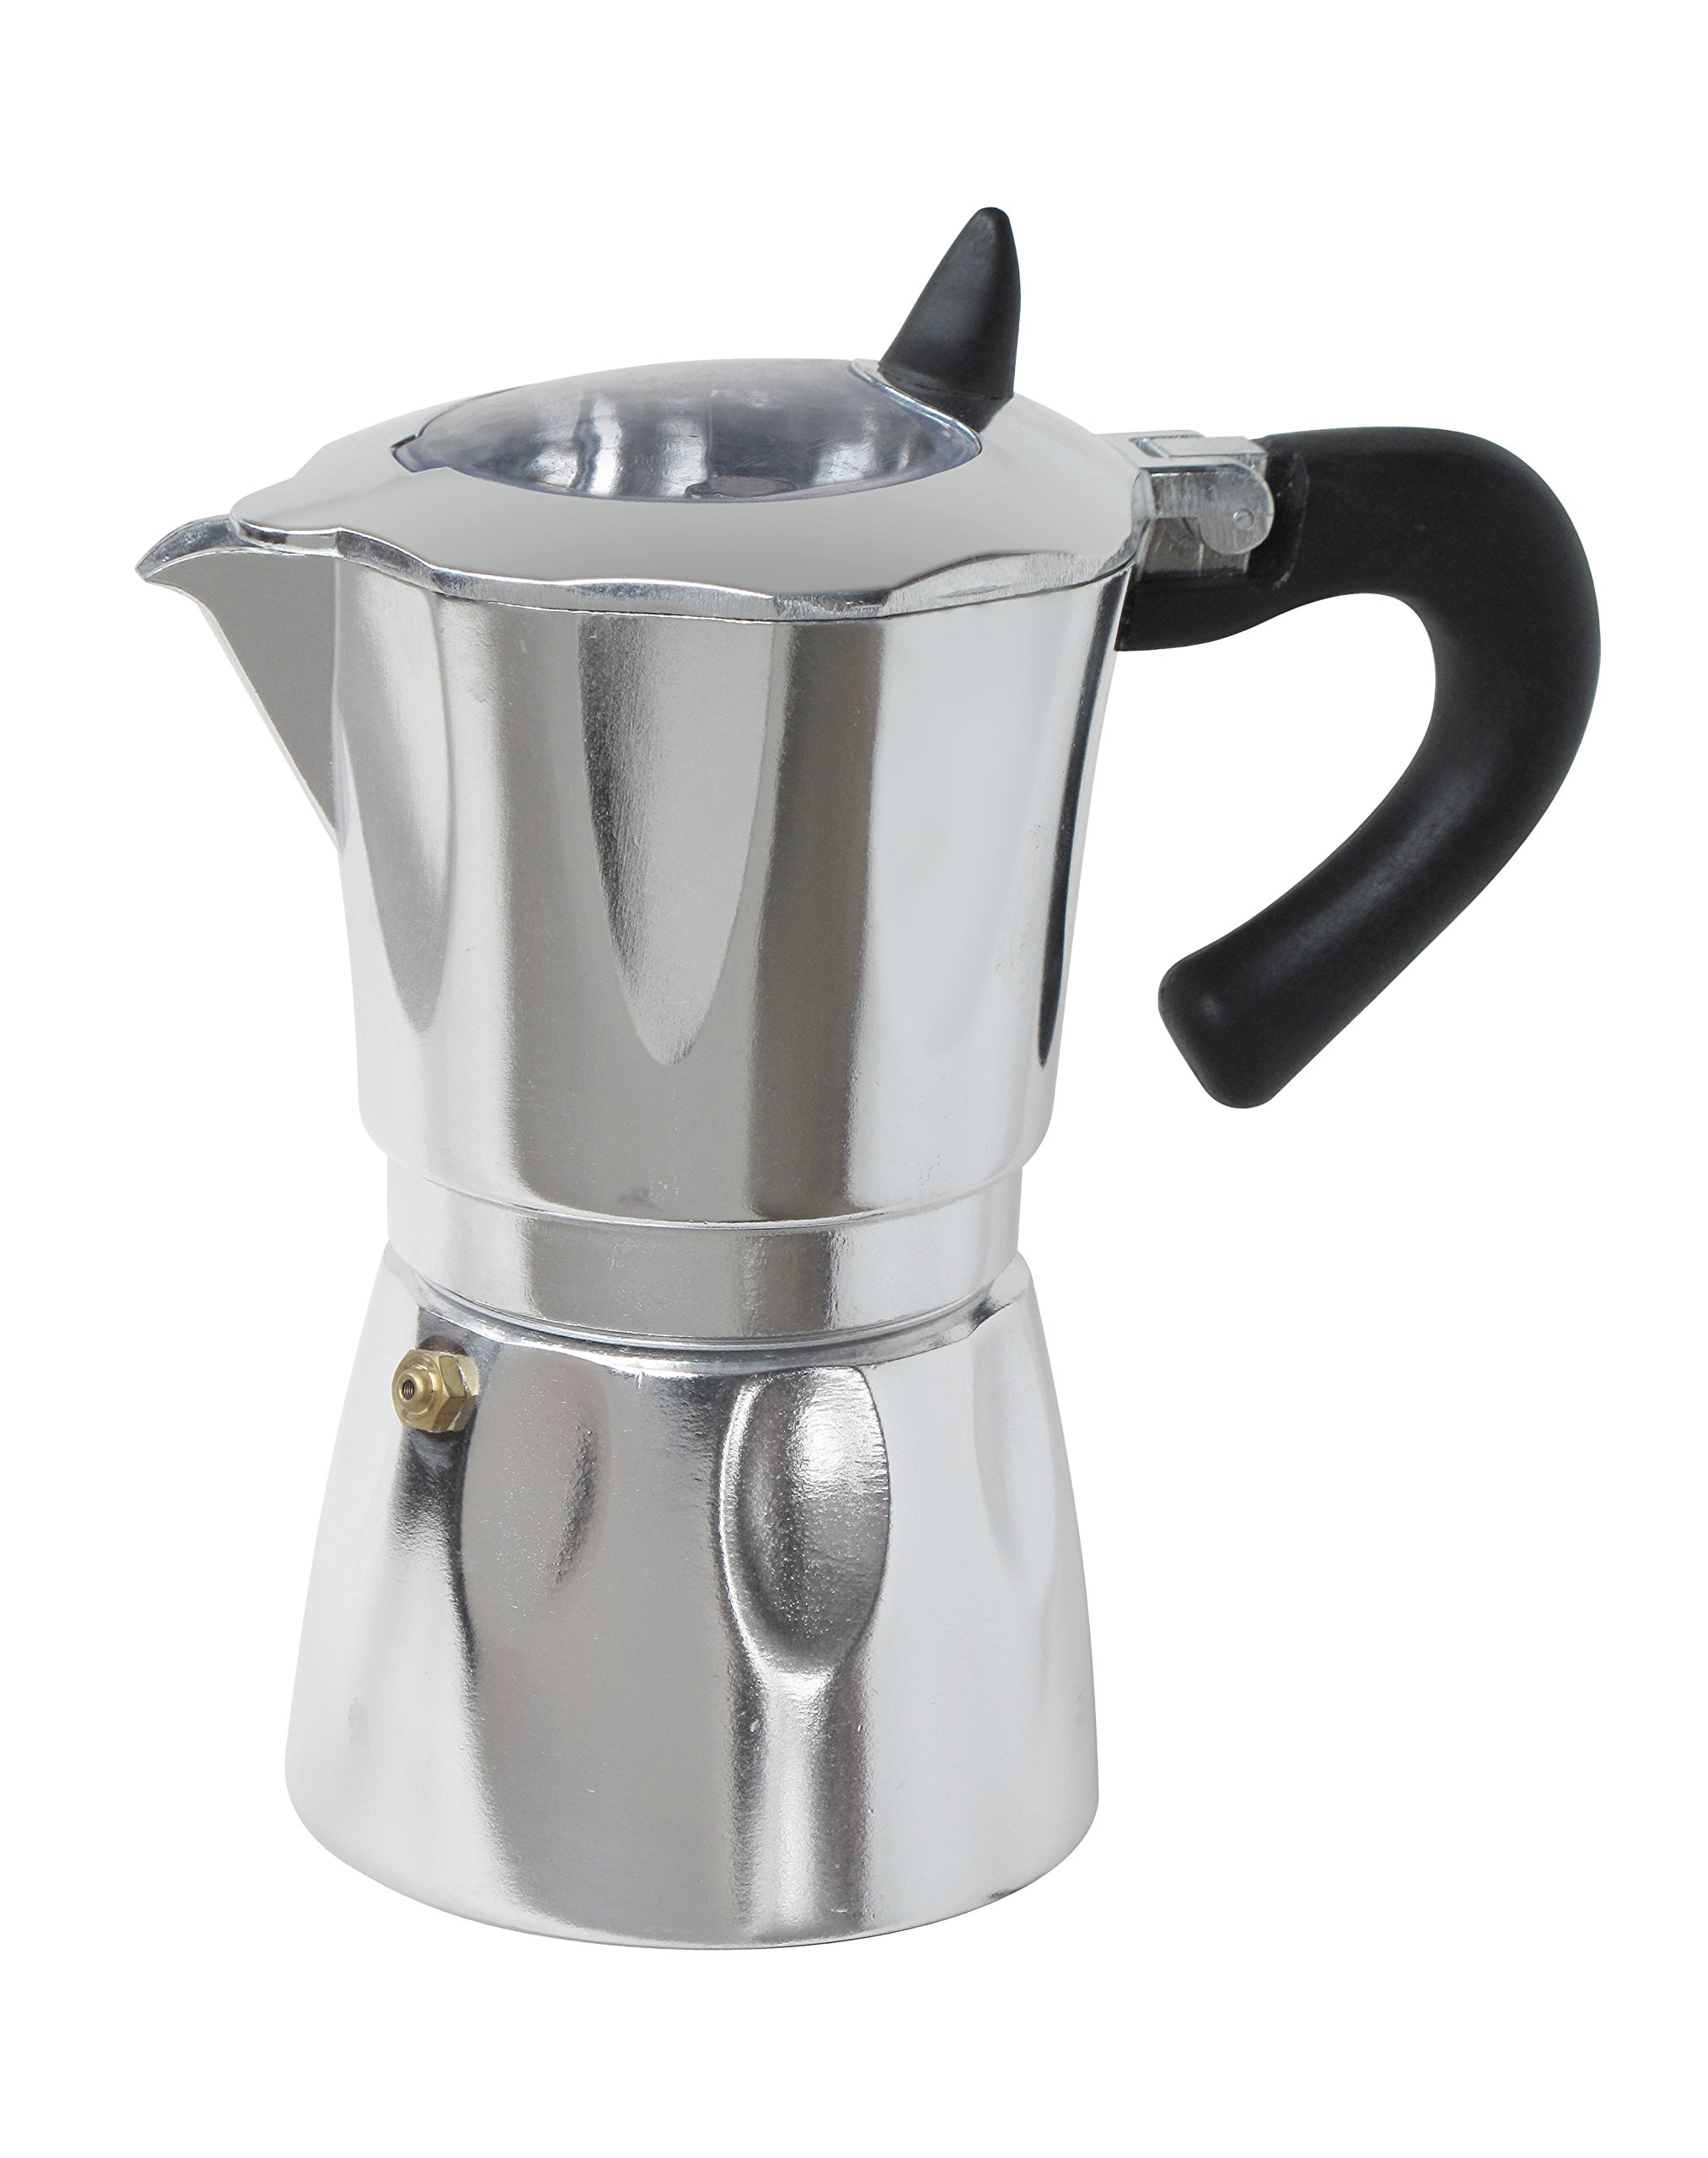 Cuisinox COFWD12 12 Cup Vista Espresso Coffee Maker, 12 Cup, Silver;Black;Clear